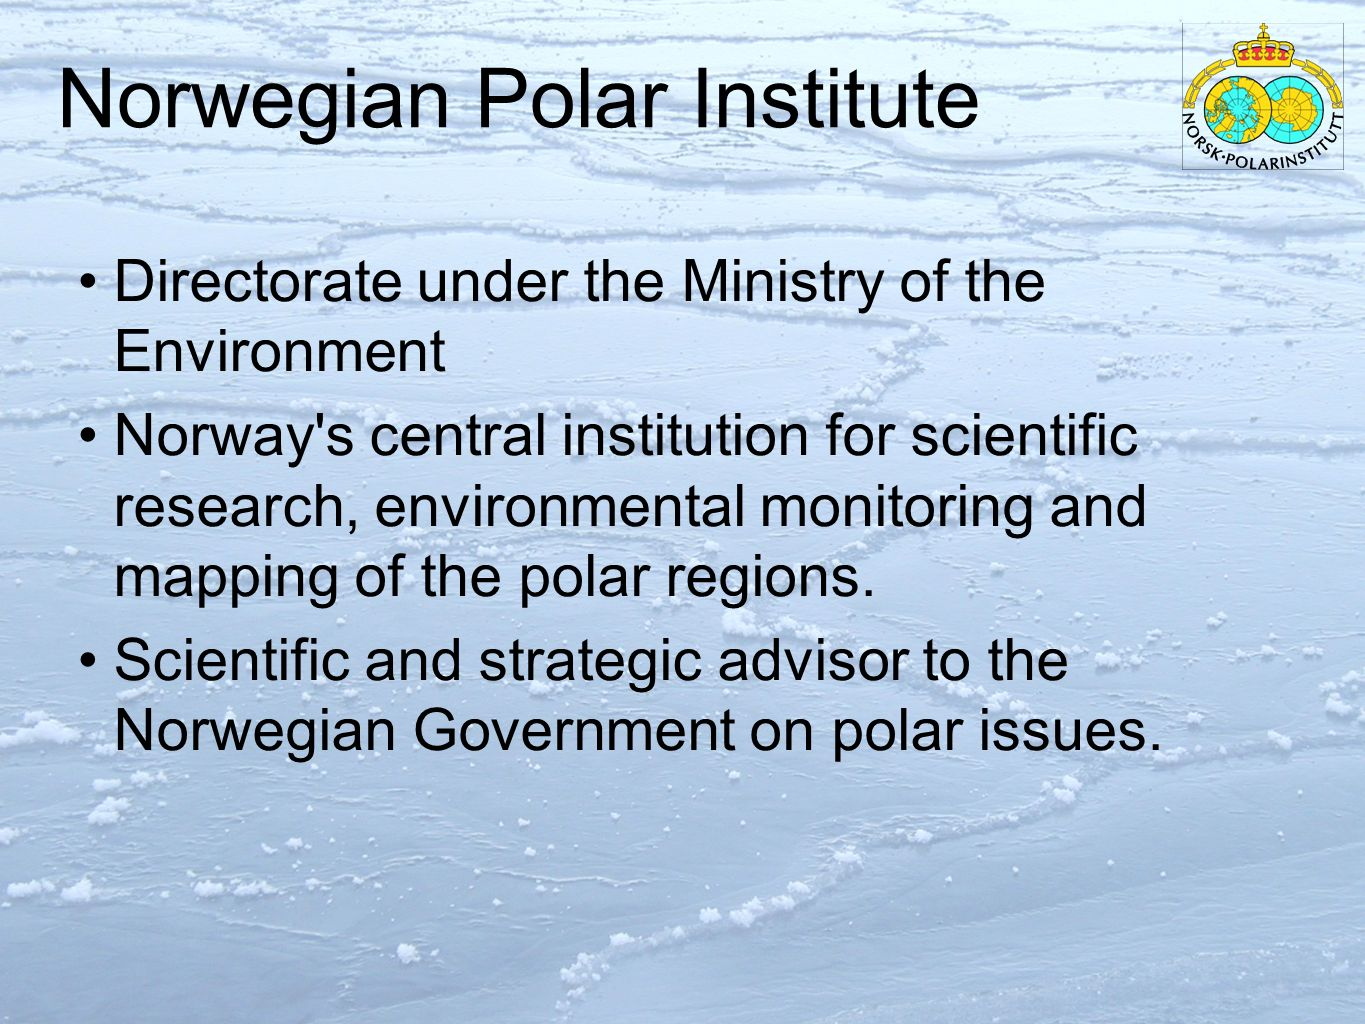 Norwegian Polar Institute Directorate under the Ministry of the Environment Norway s central institution for scientific research, environmental monitoring and mapping of the polar regions.